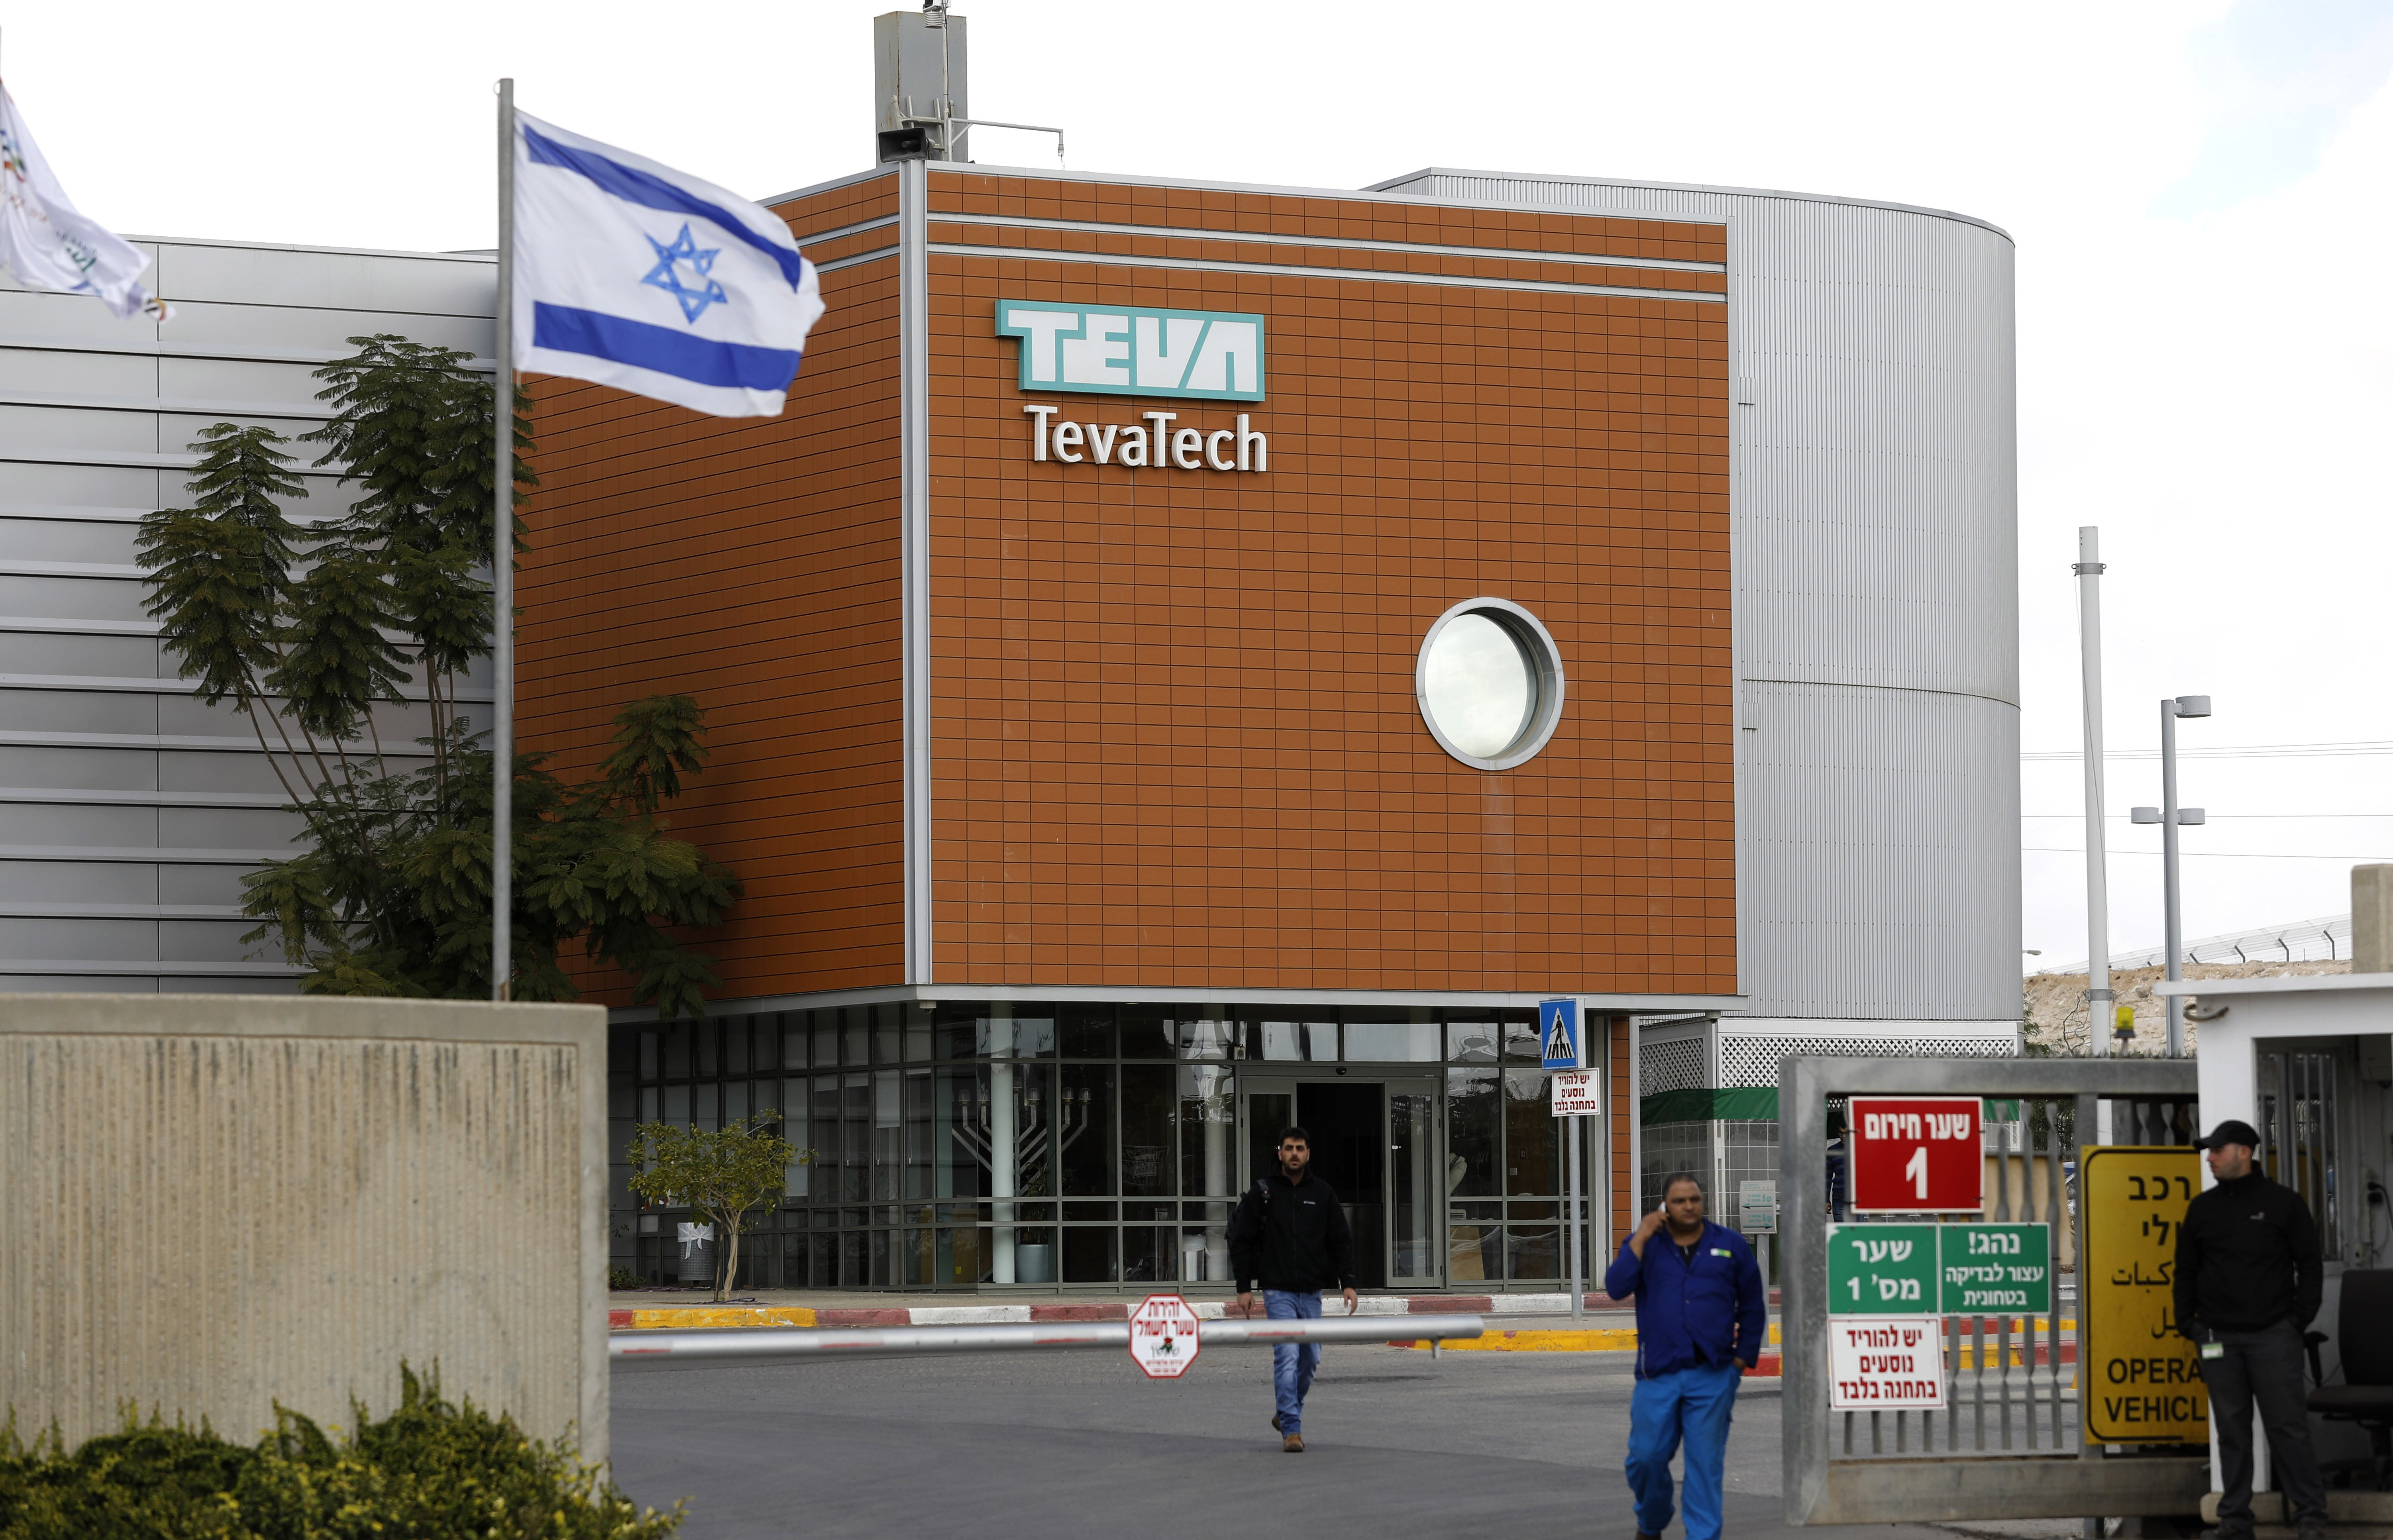 Israeli employees of Teva, the world's biggest manufacturer of generic drugs, gather outside the pharmaceutical company's plant in Ne'ot Hovav, an industrial south of Beersheva, on December 14, 2017. (MENAHEM KAHANA/AFP/Getty Images)